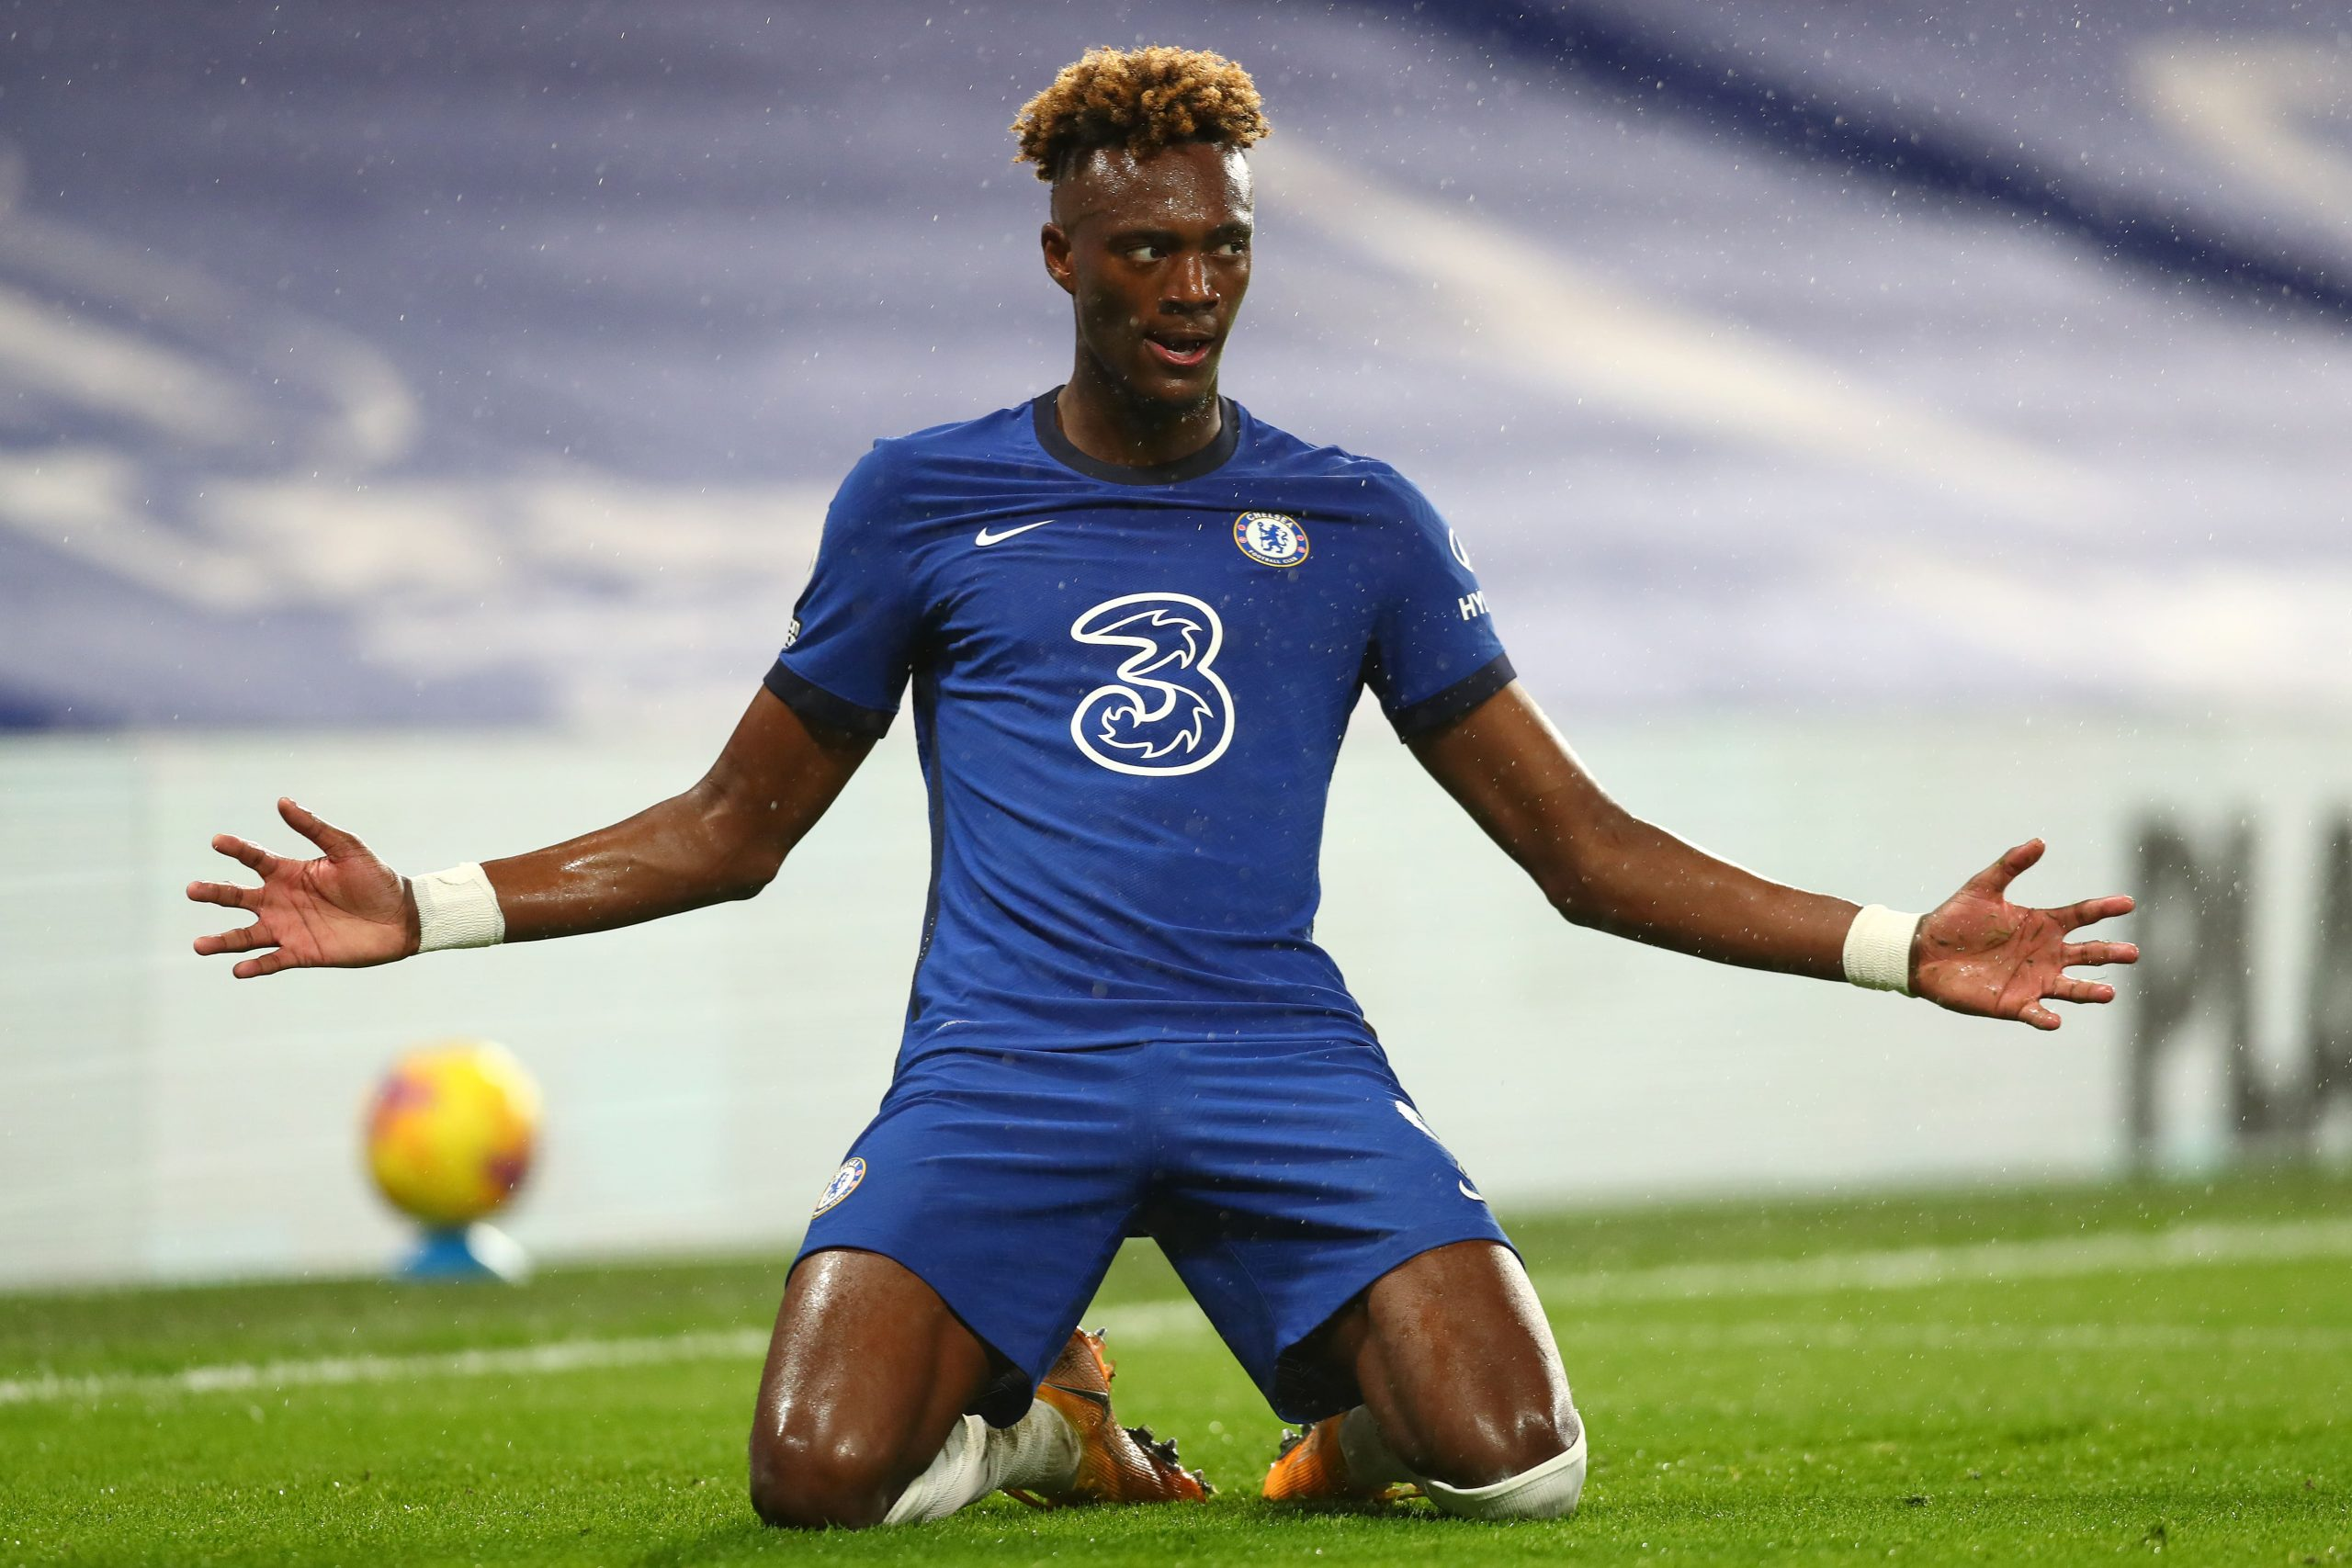 Tammy Abraham thinks Chelsea signings are underperforming due to lack of time in the training ground together.